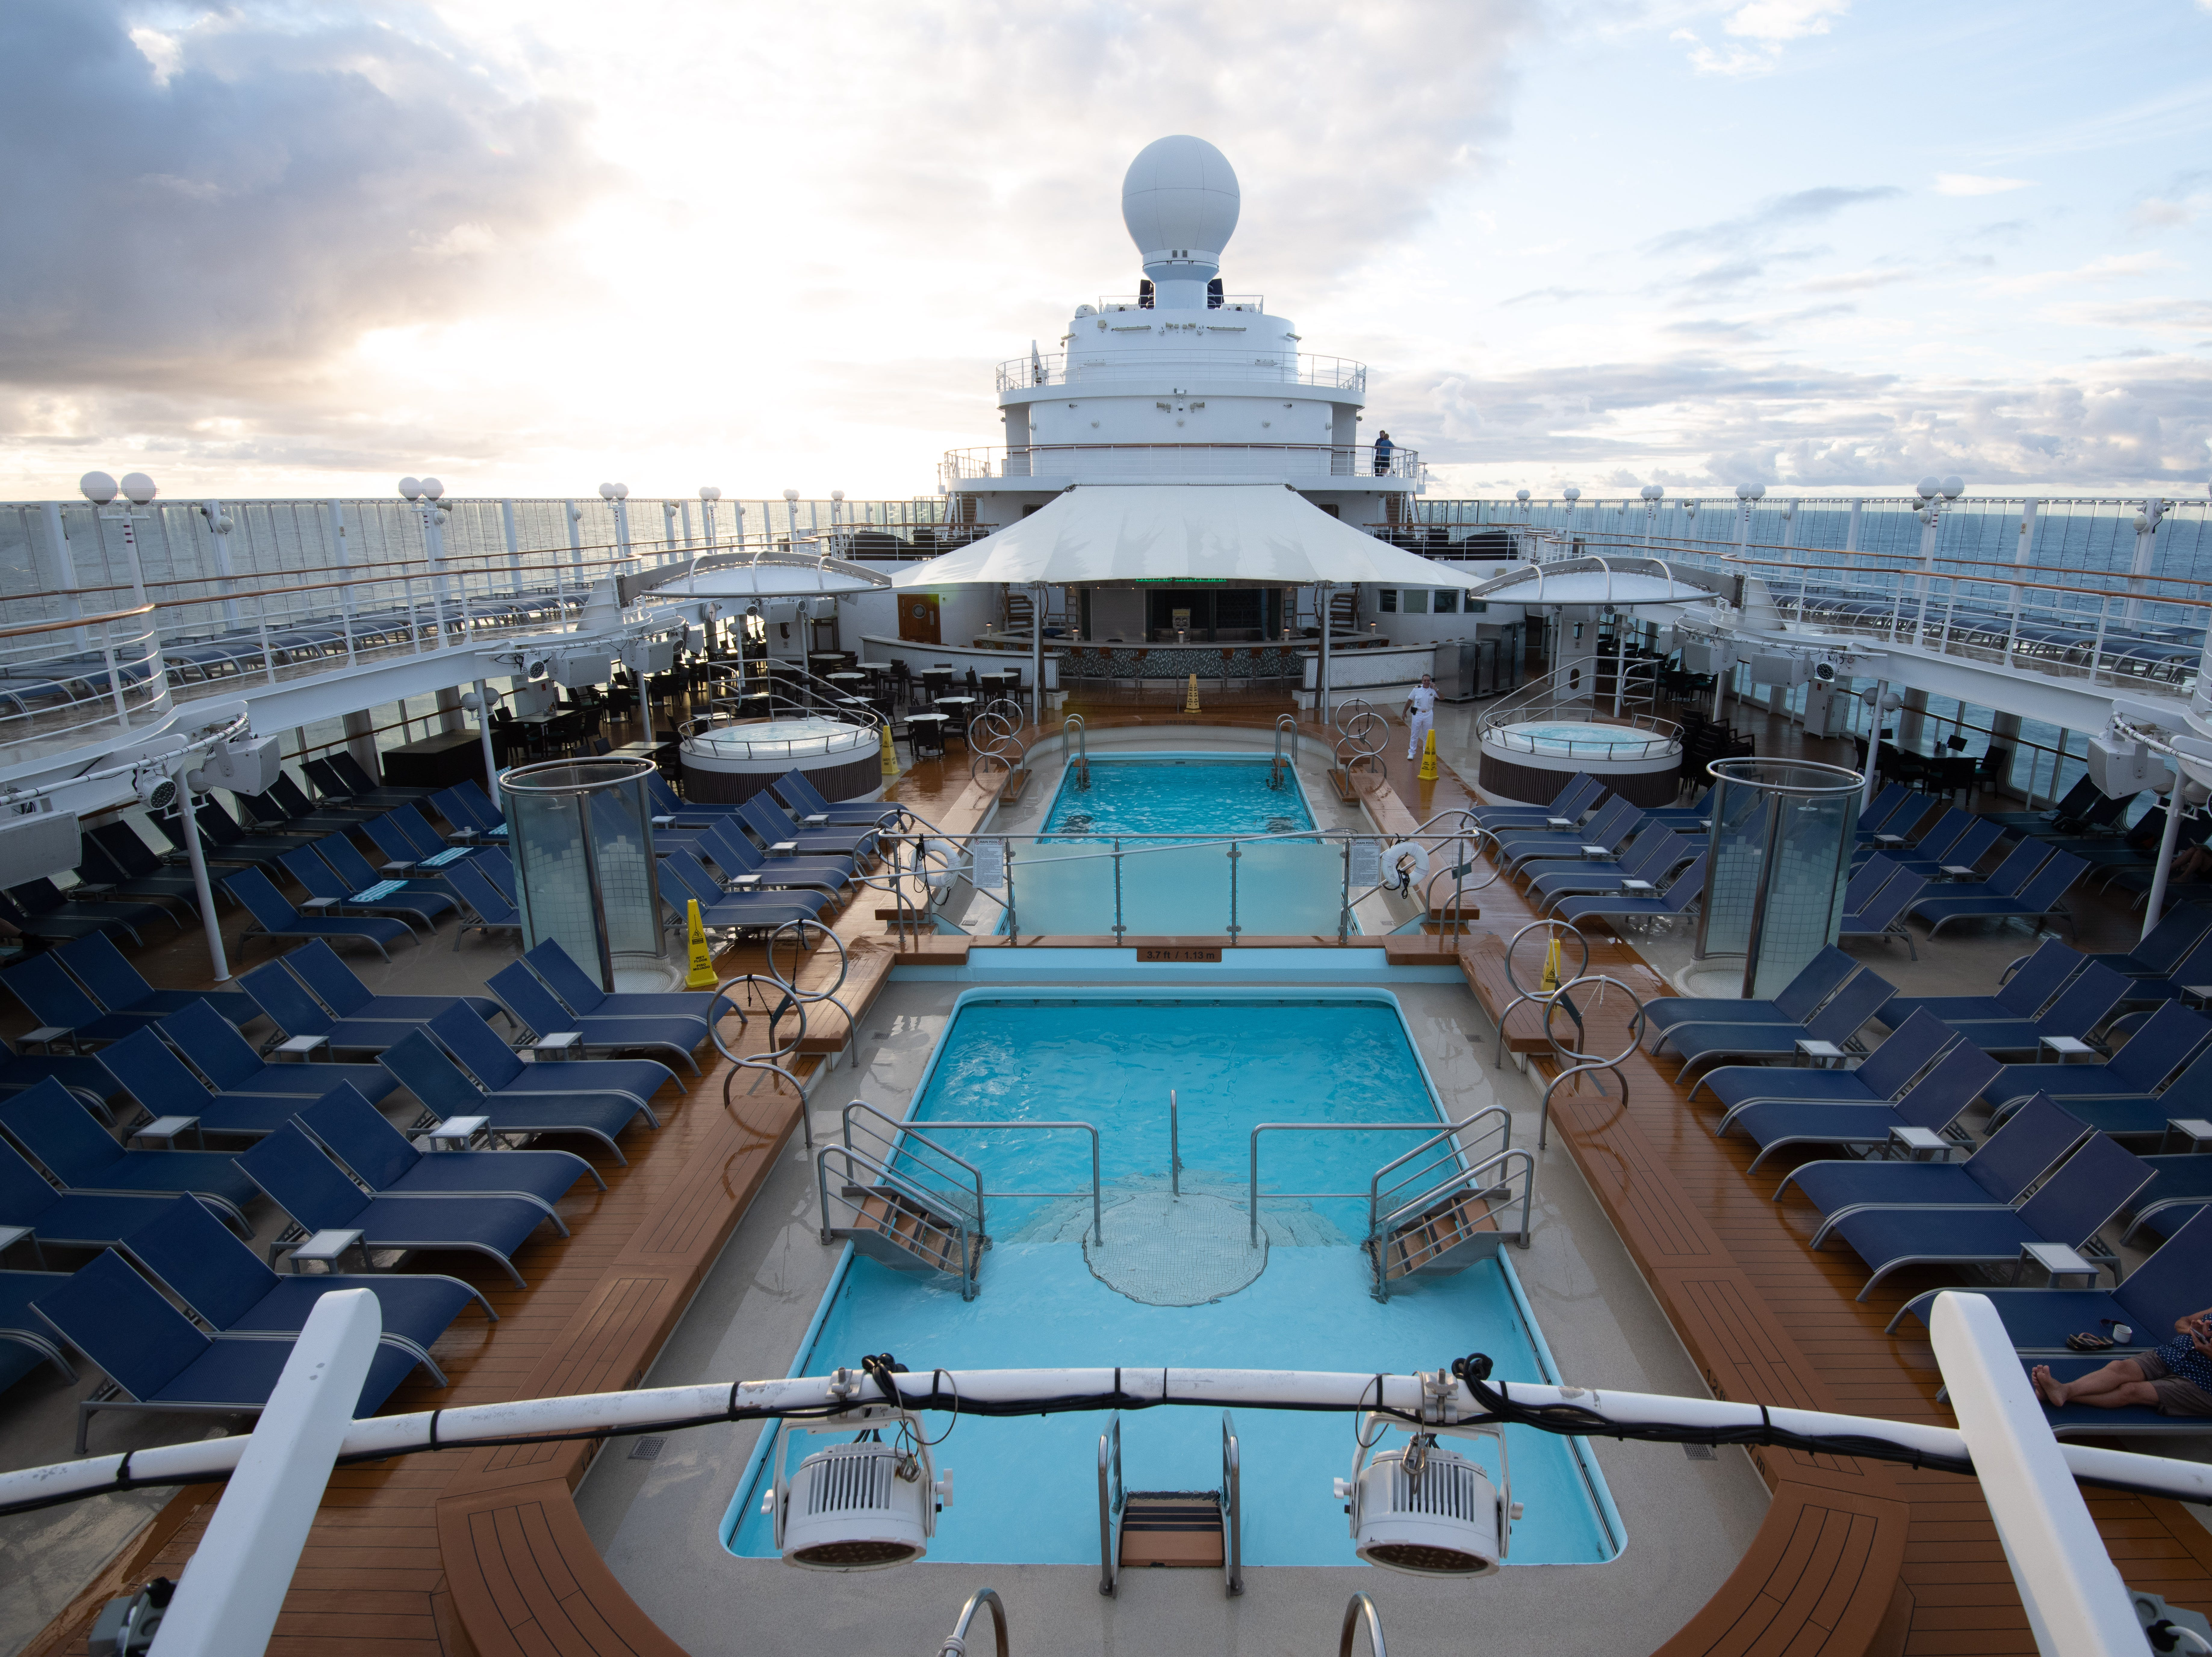 At 80,439 tons, Pride of America is barely half the size of Norwegian Cruise Line's newest vessels and has a more intimate feel. It features 14 decks topped with extensive open-air pool and sun lounging areas that are fitting for its year-round home.